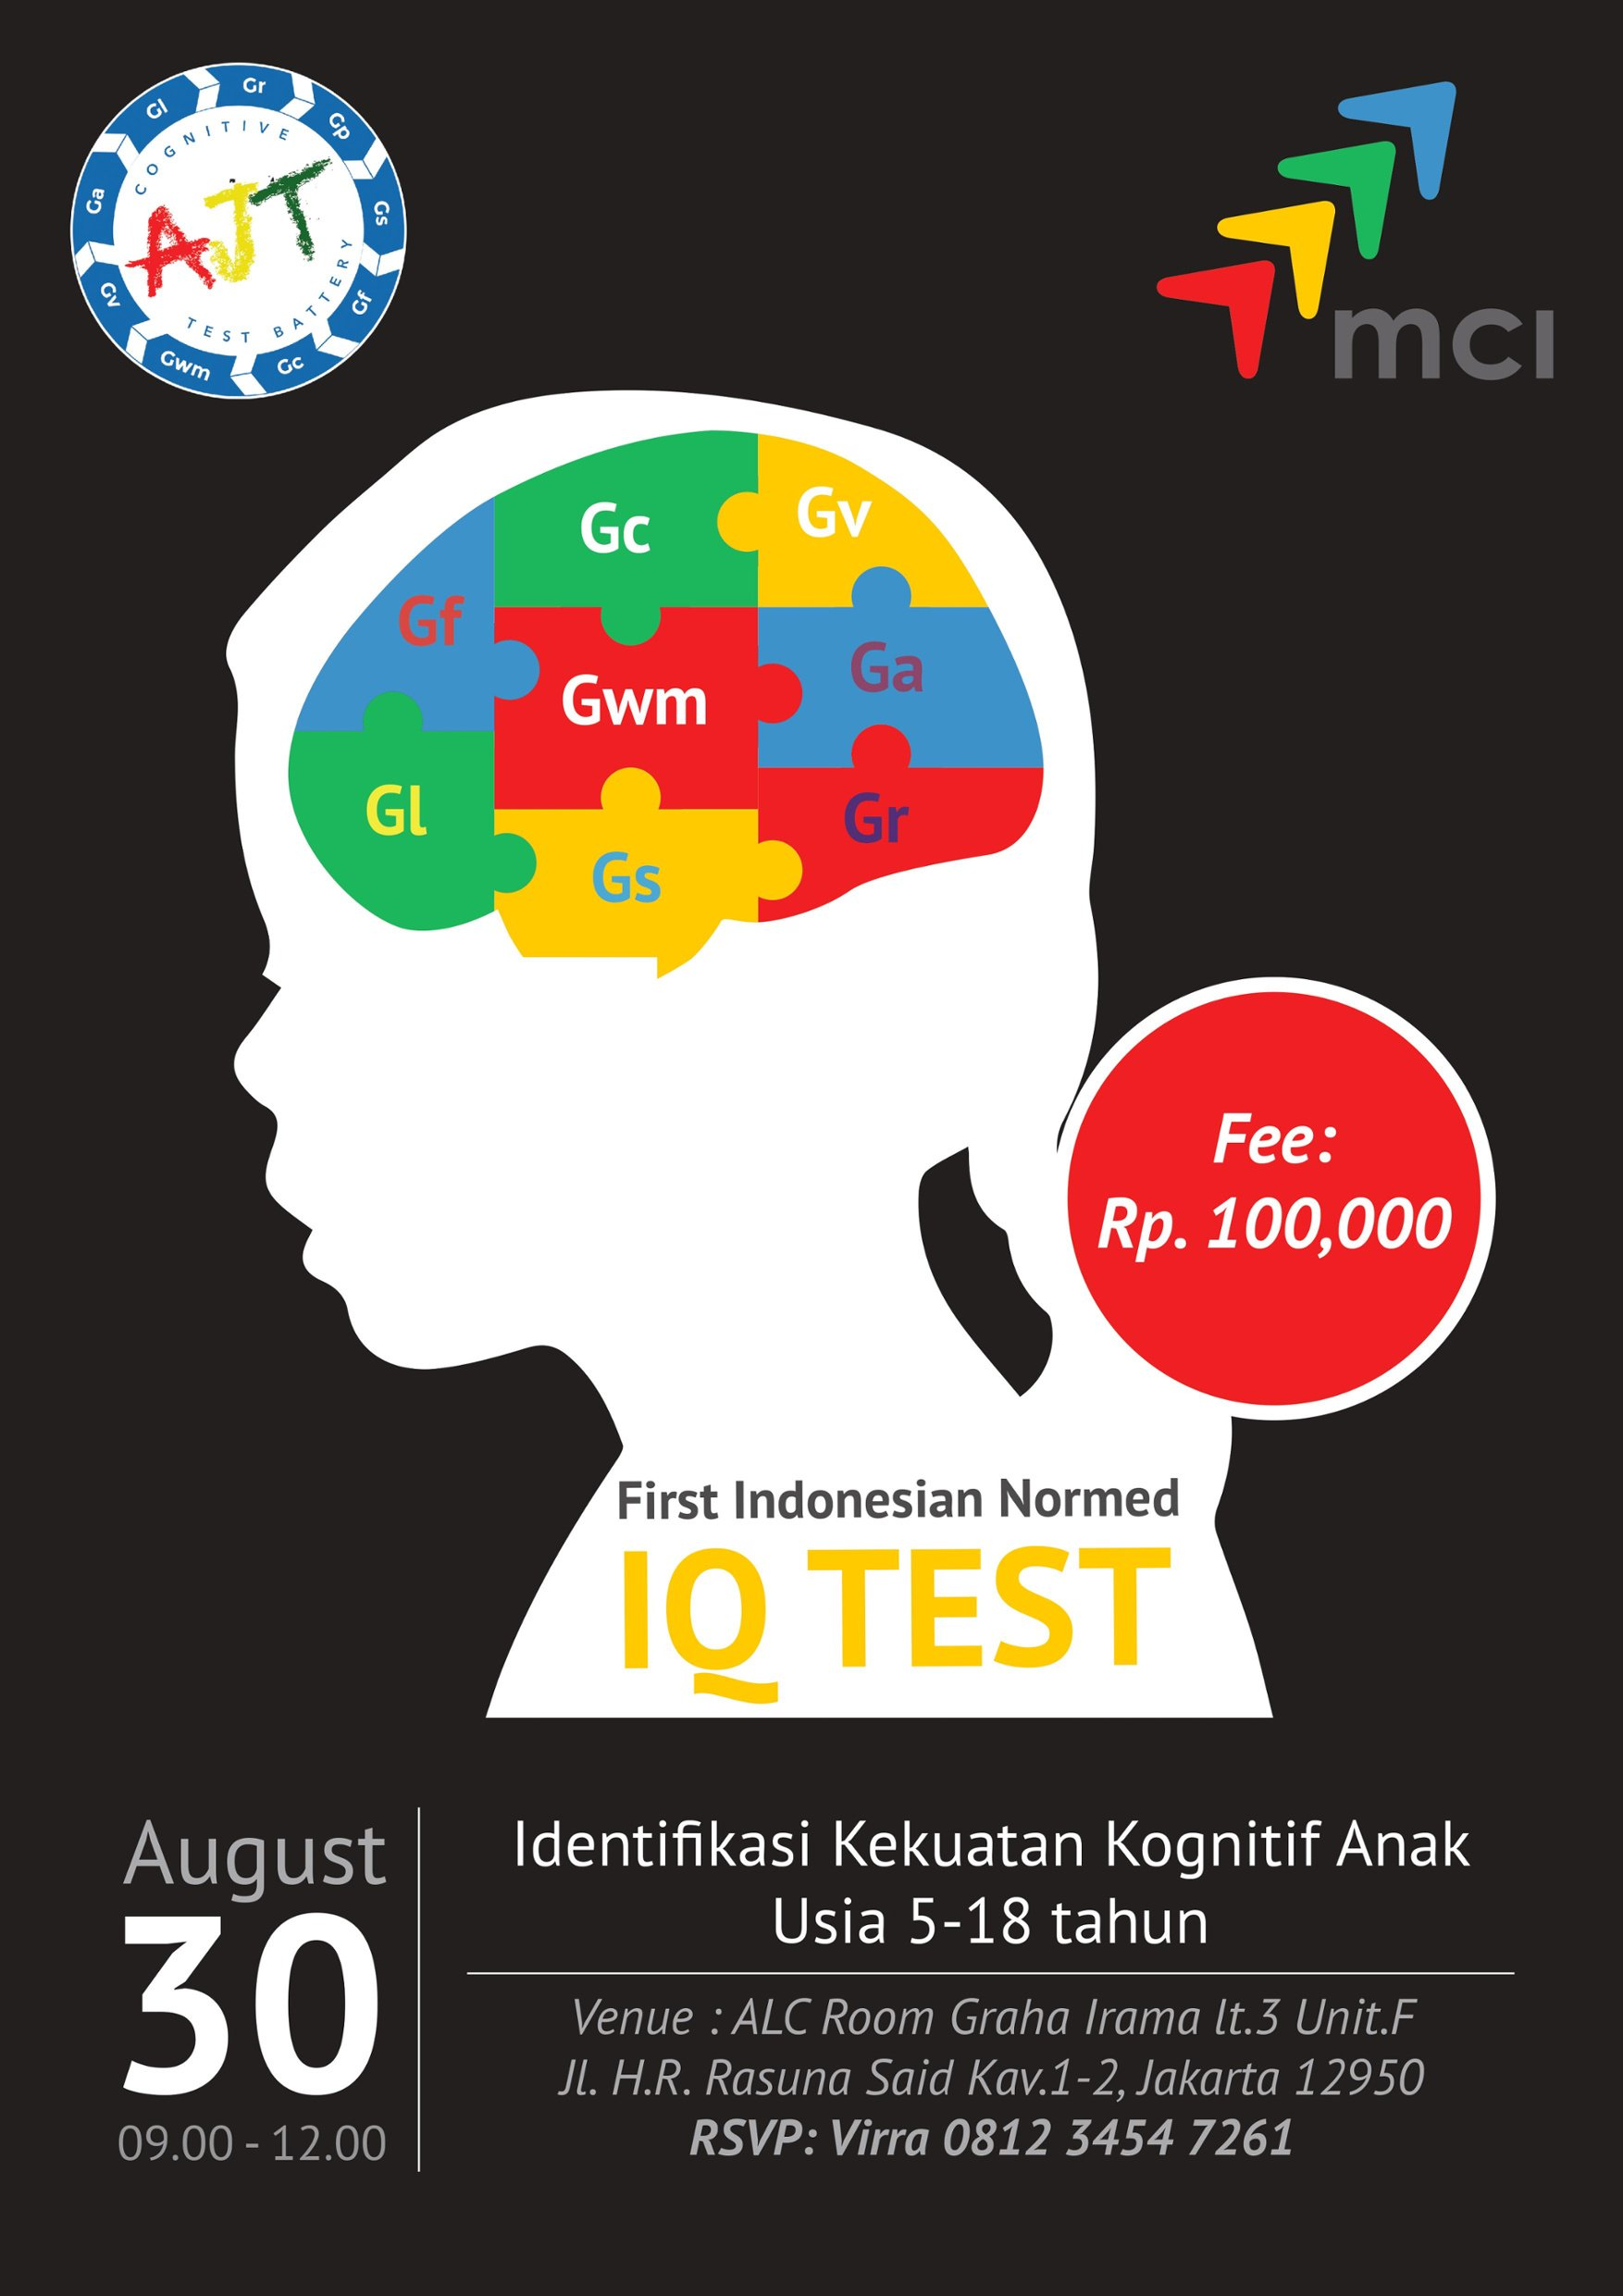 Preview Event : Introduction to AJT CogTest Training - Graha Irama, 30 Agustus 2018